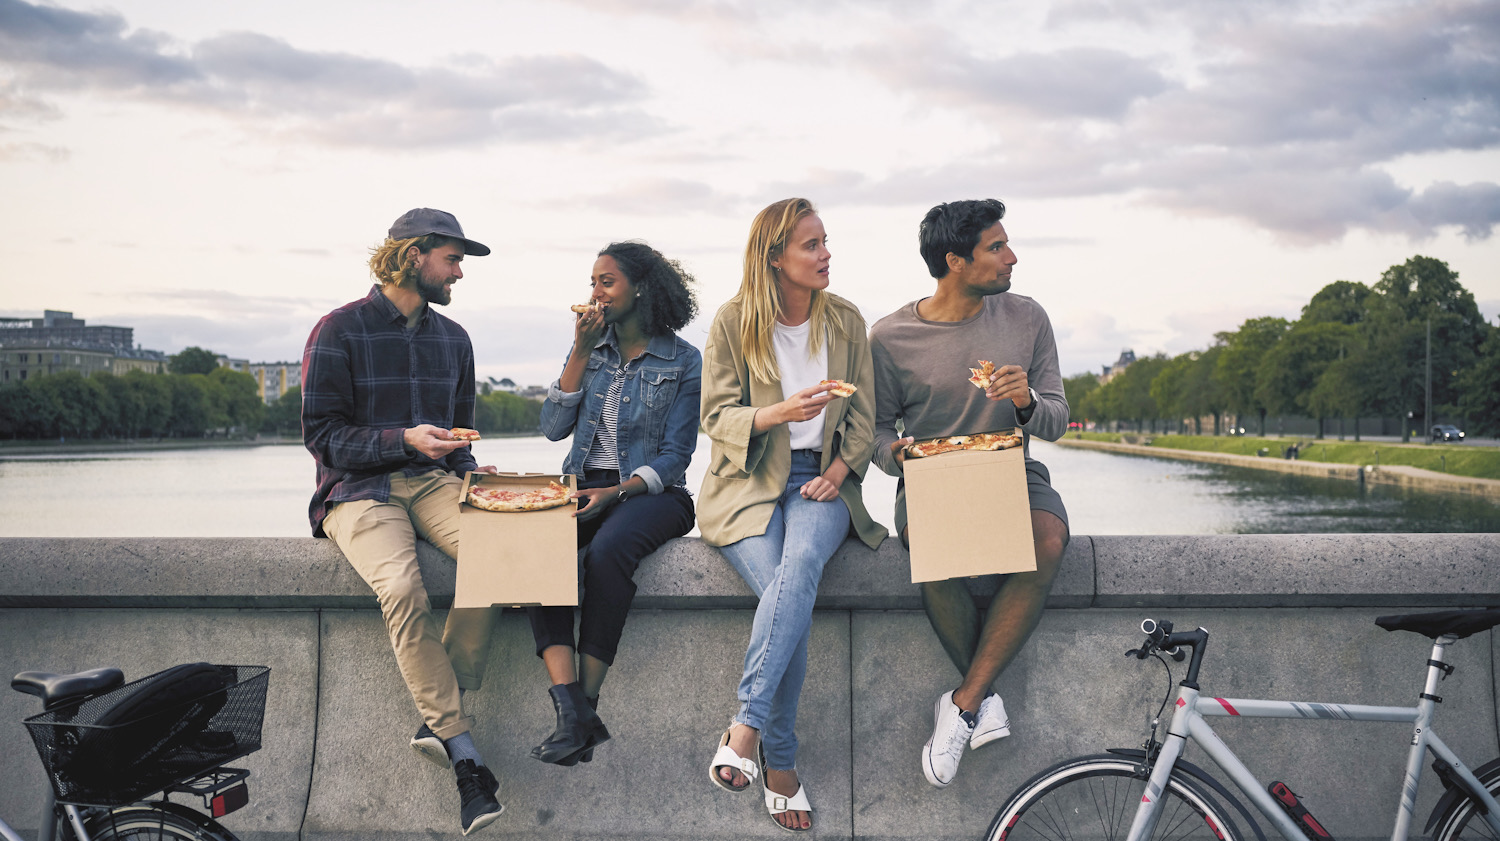 Photo shows a group of young people eating together outside next to a lake. Denmark's new climate plan aims to tackle the impact of climate change through food.